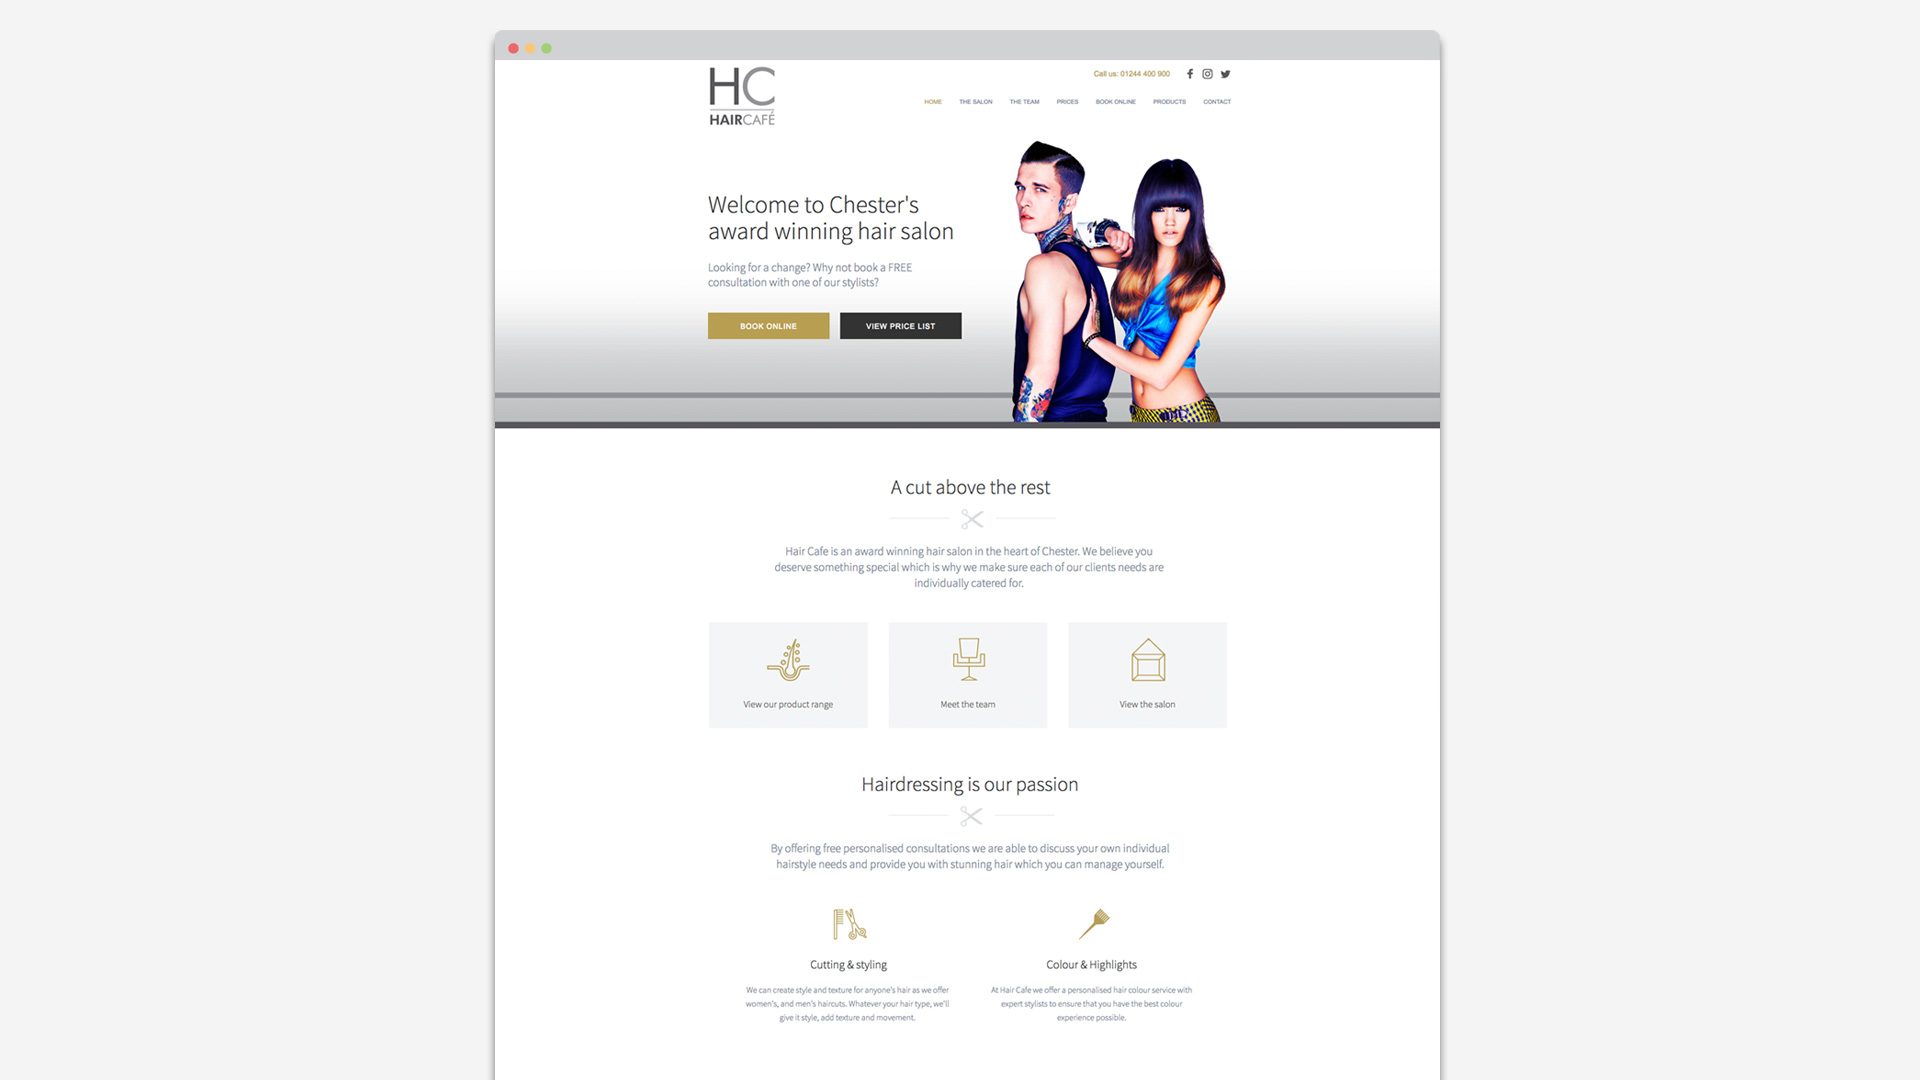 Haircafe website design